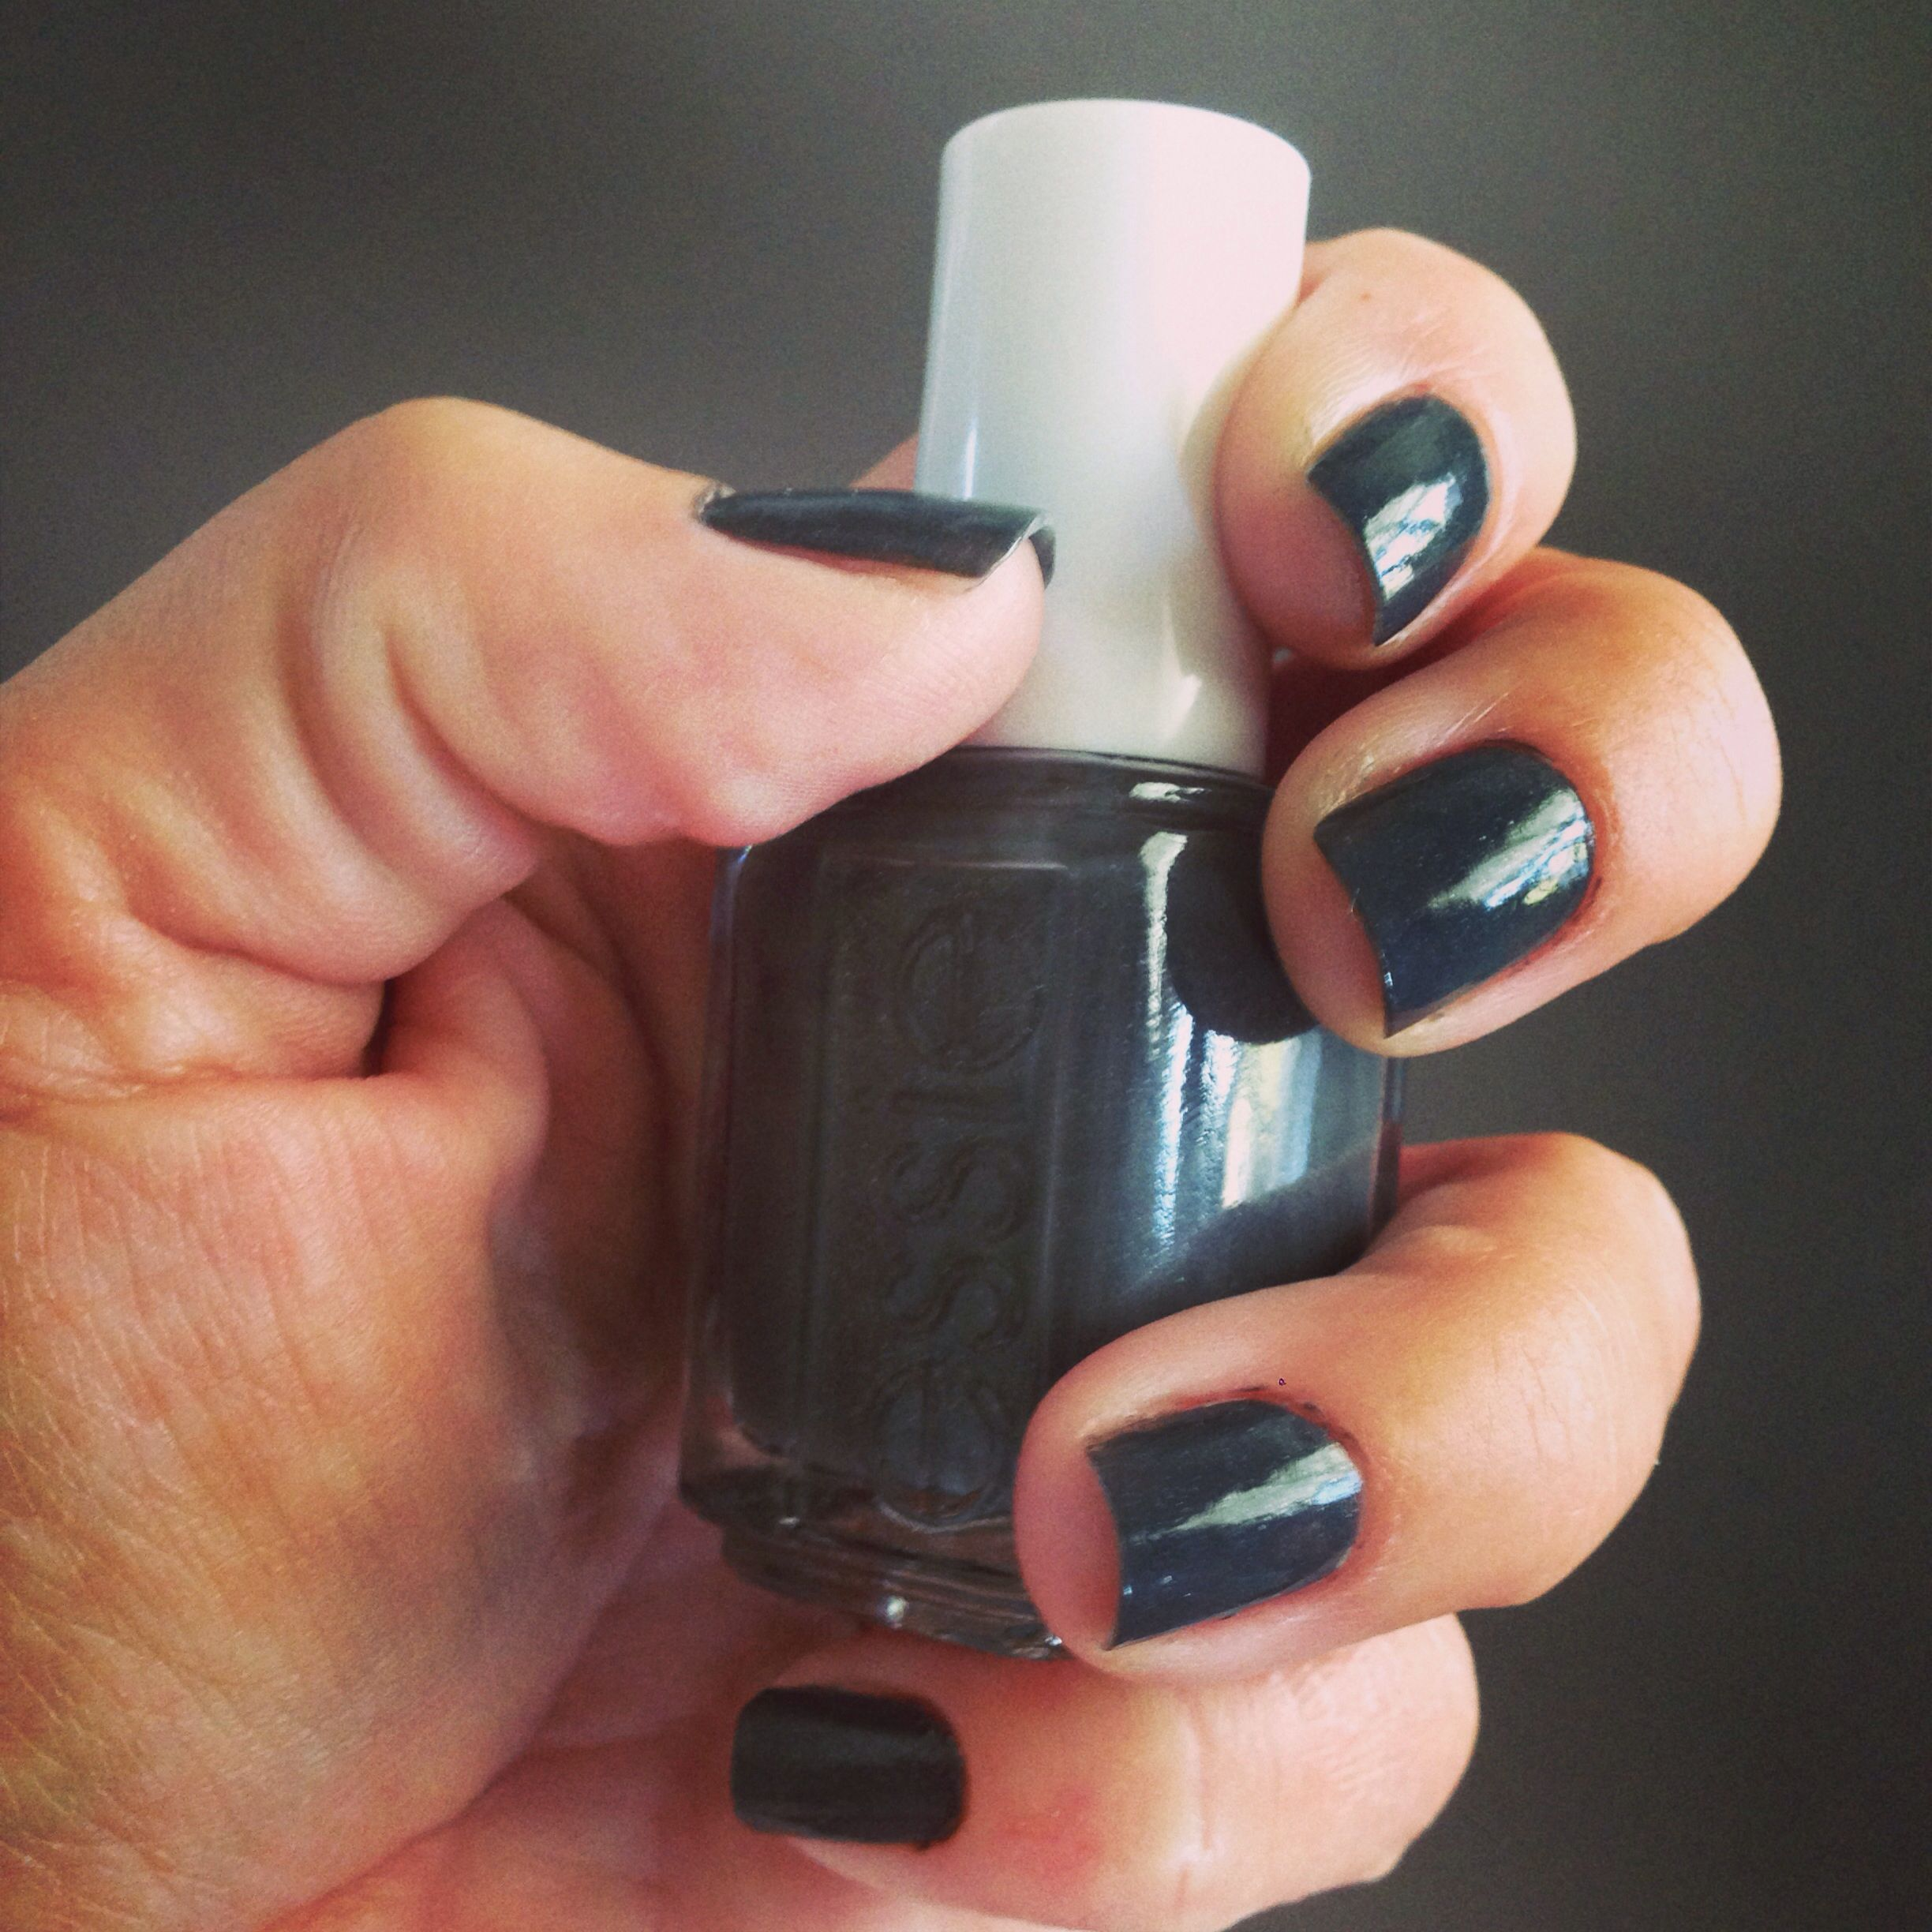 Essie nail polish: cashmere bathrobe | Nails | Pinterest | Essie ...